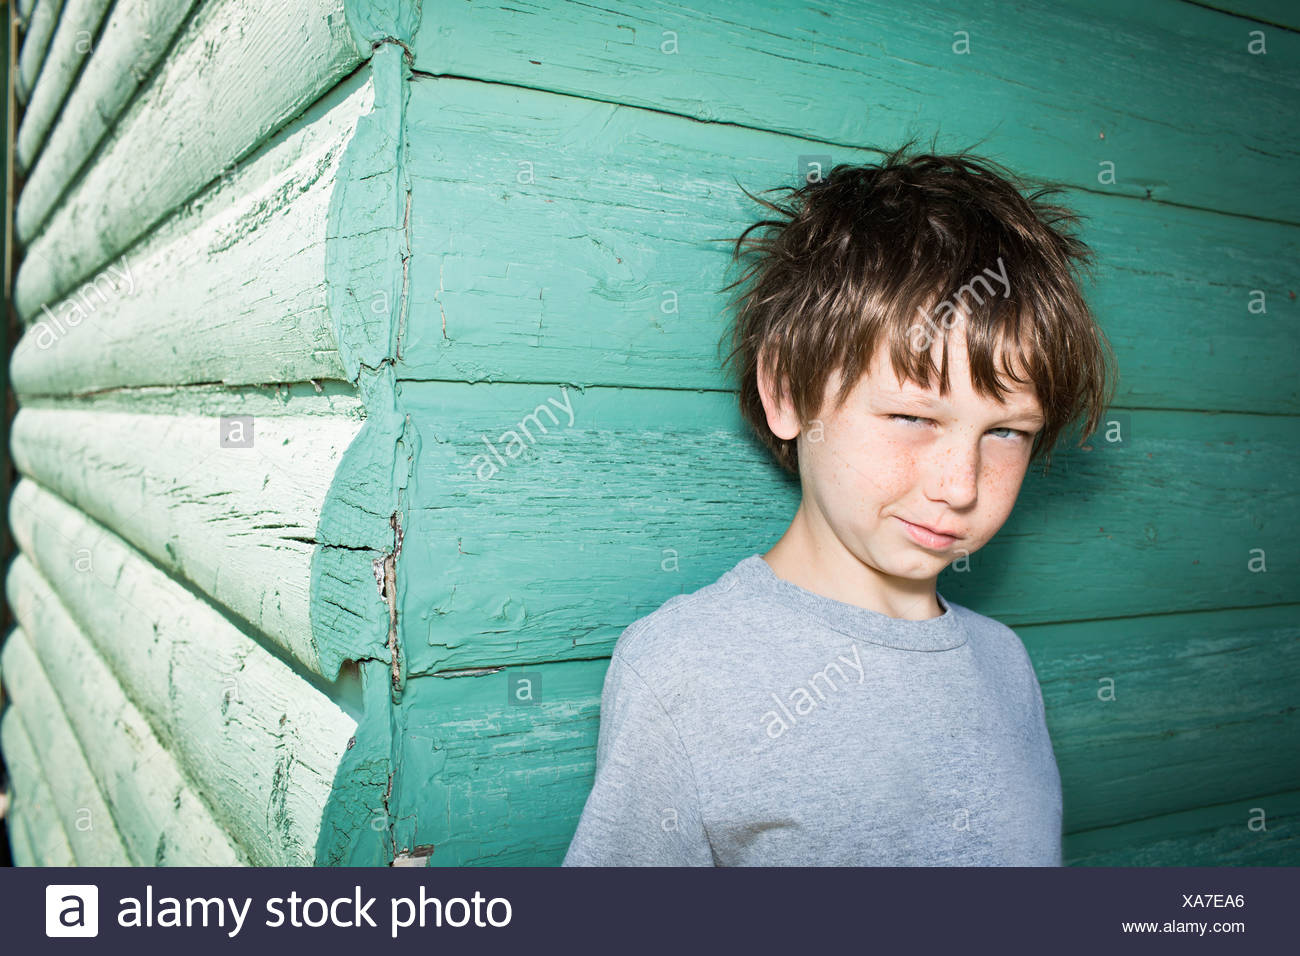 Boy being cheeky to camera - Stock Image